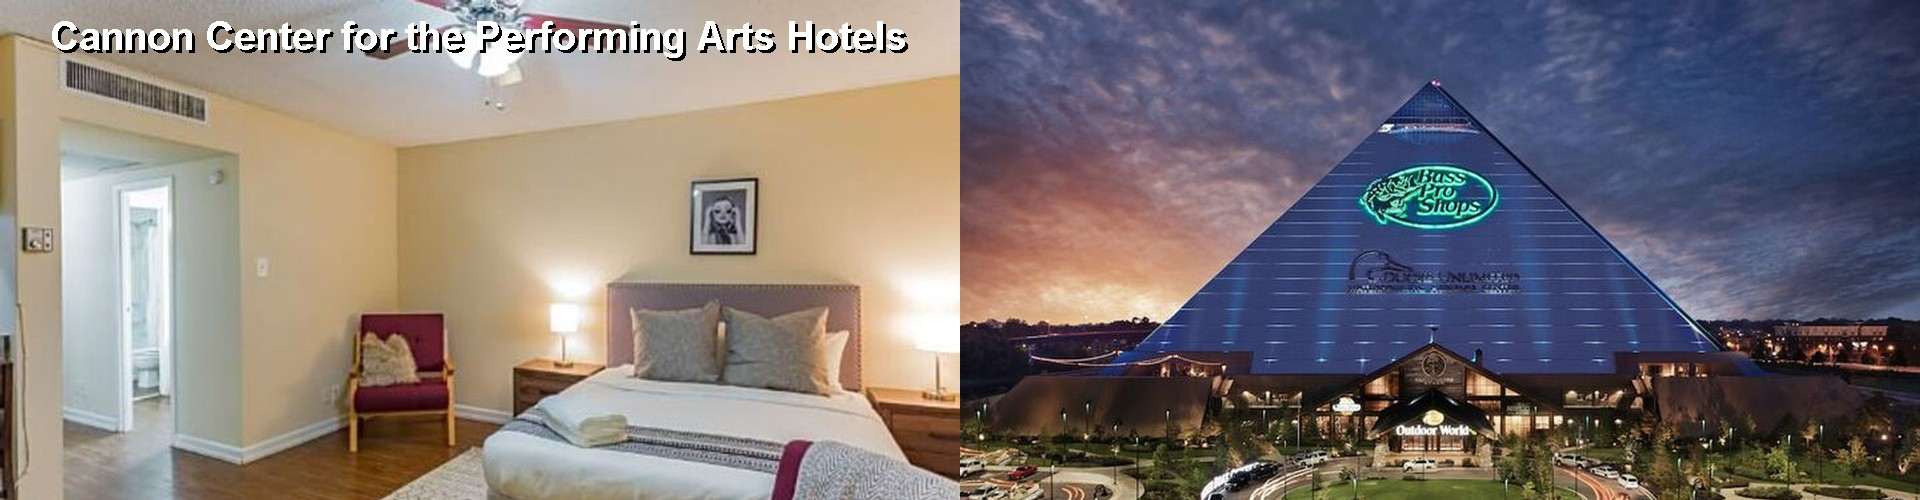 5 Best Hotels near Cannon Center for the Performing Arts